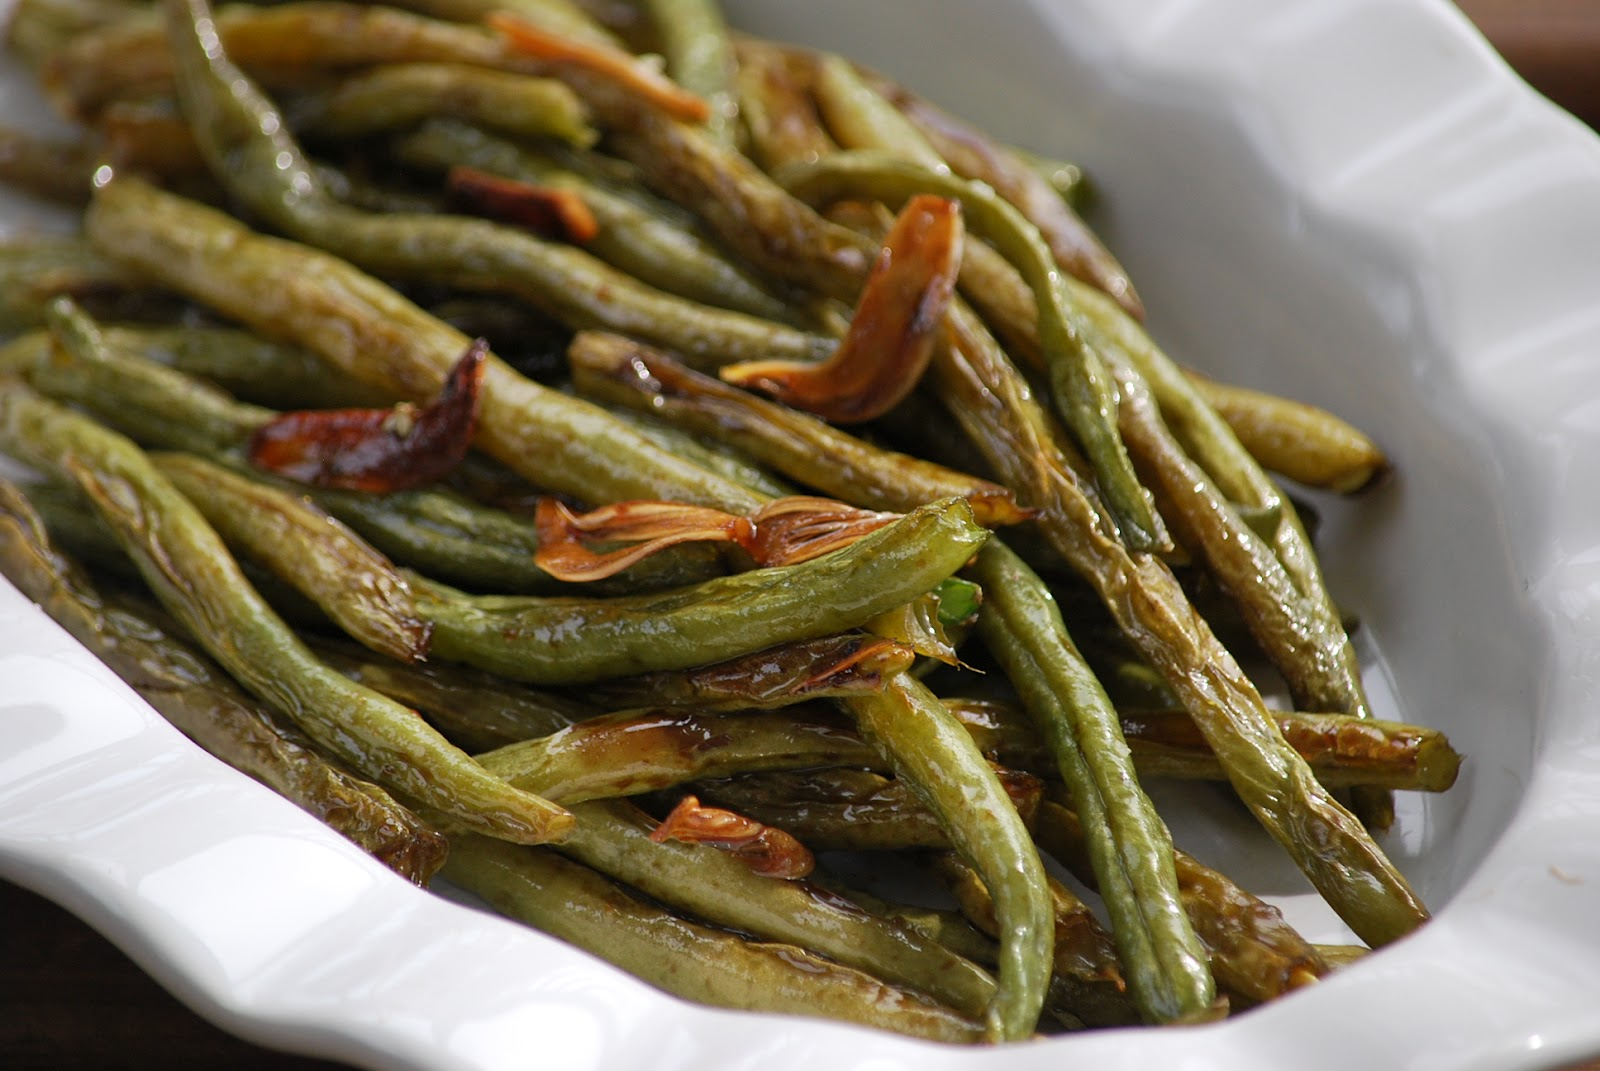 My story in recipes: Roasted Green Beans